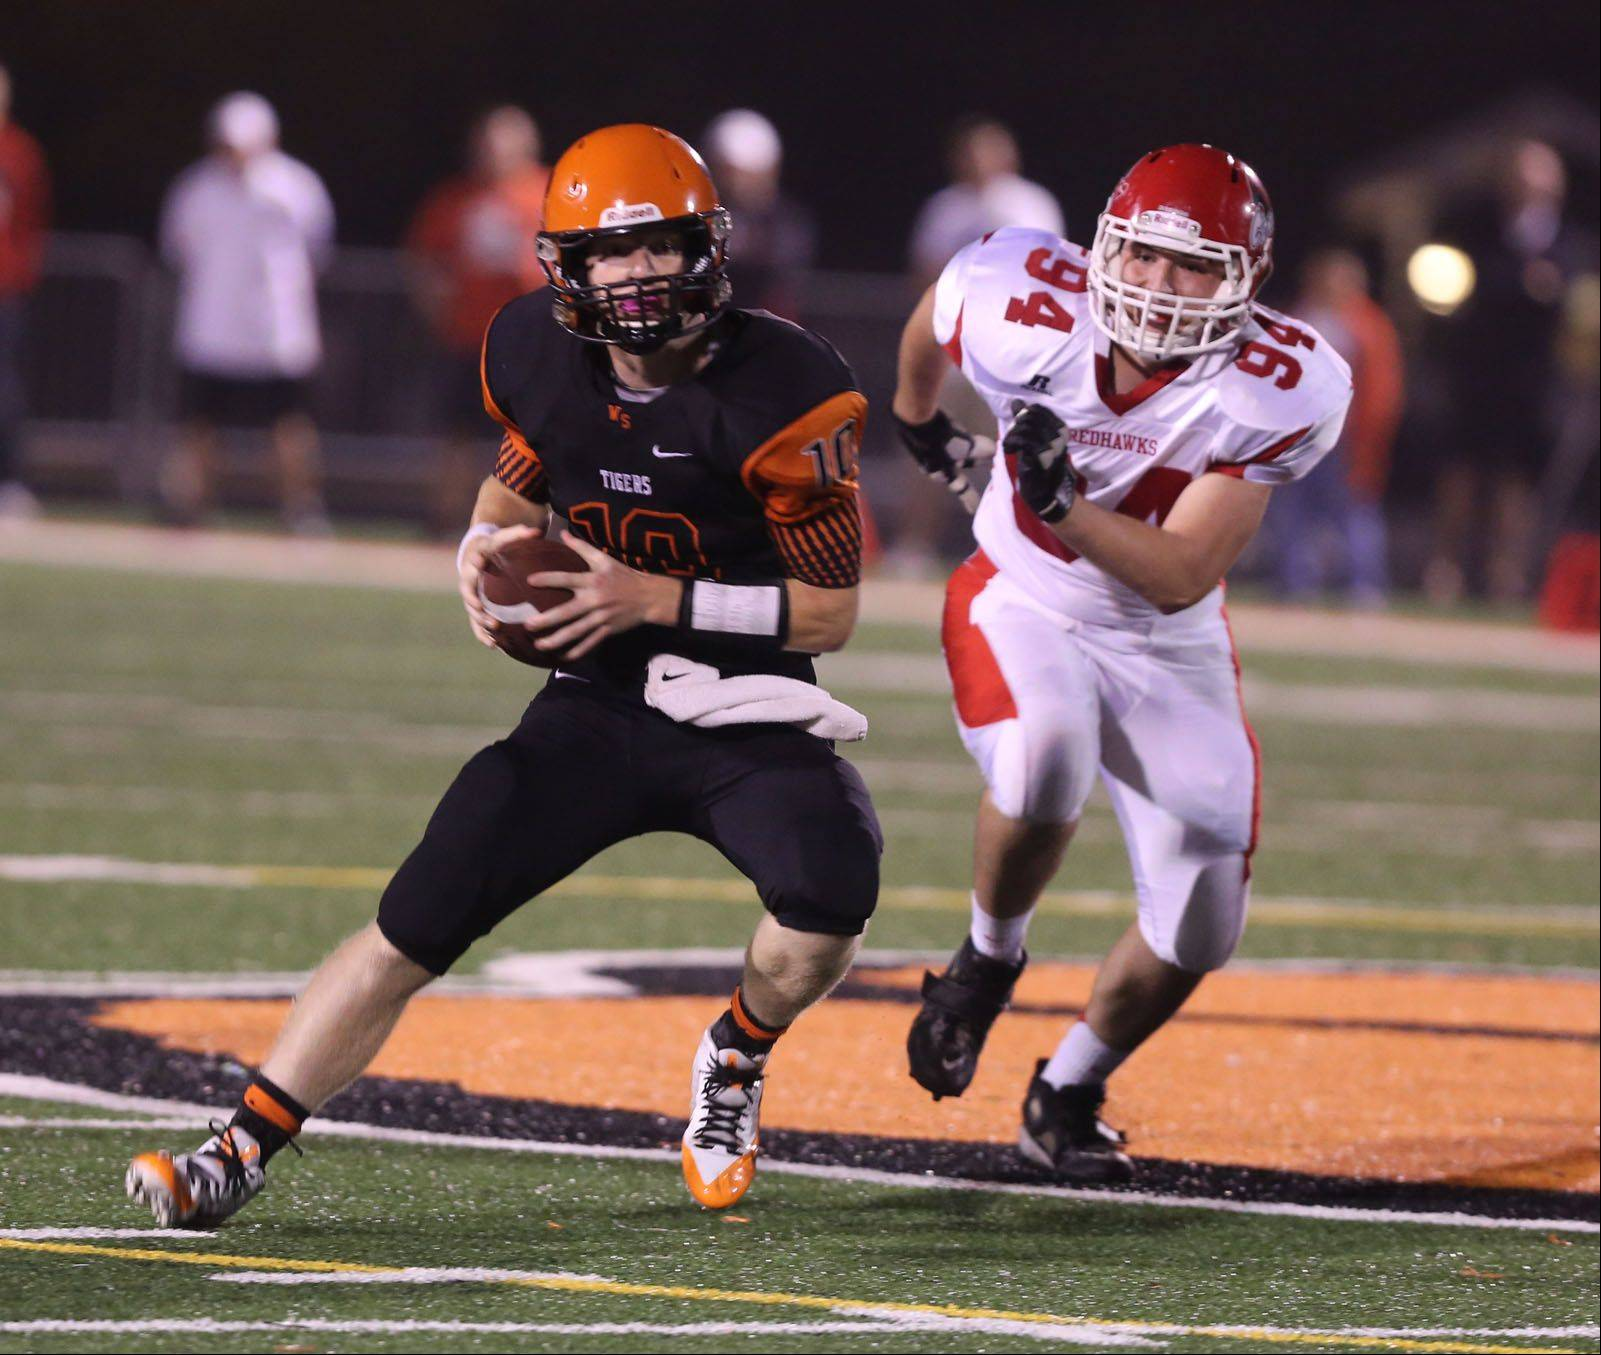 Images: Naperville Central vs. Wheaton Warrenville South football